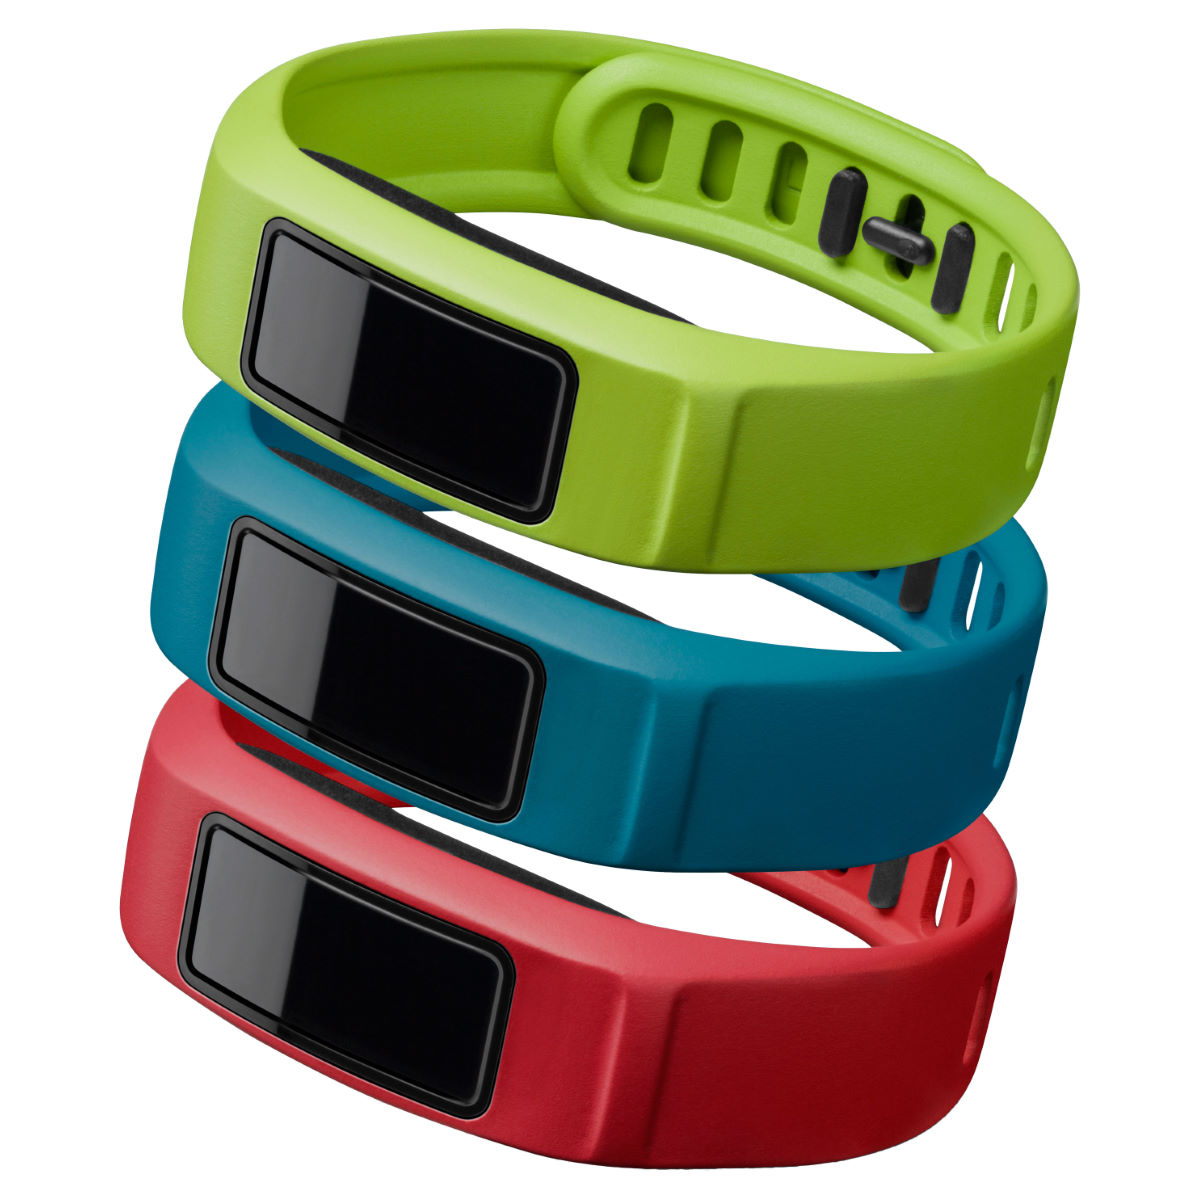 Garmin Vivofit 2 Wrist Band